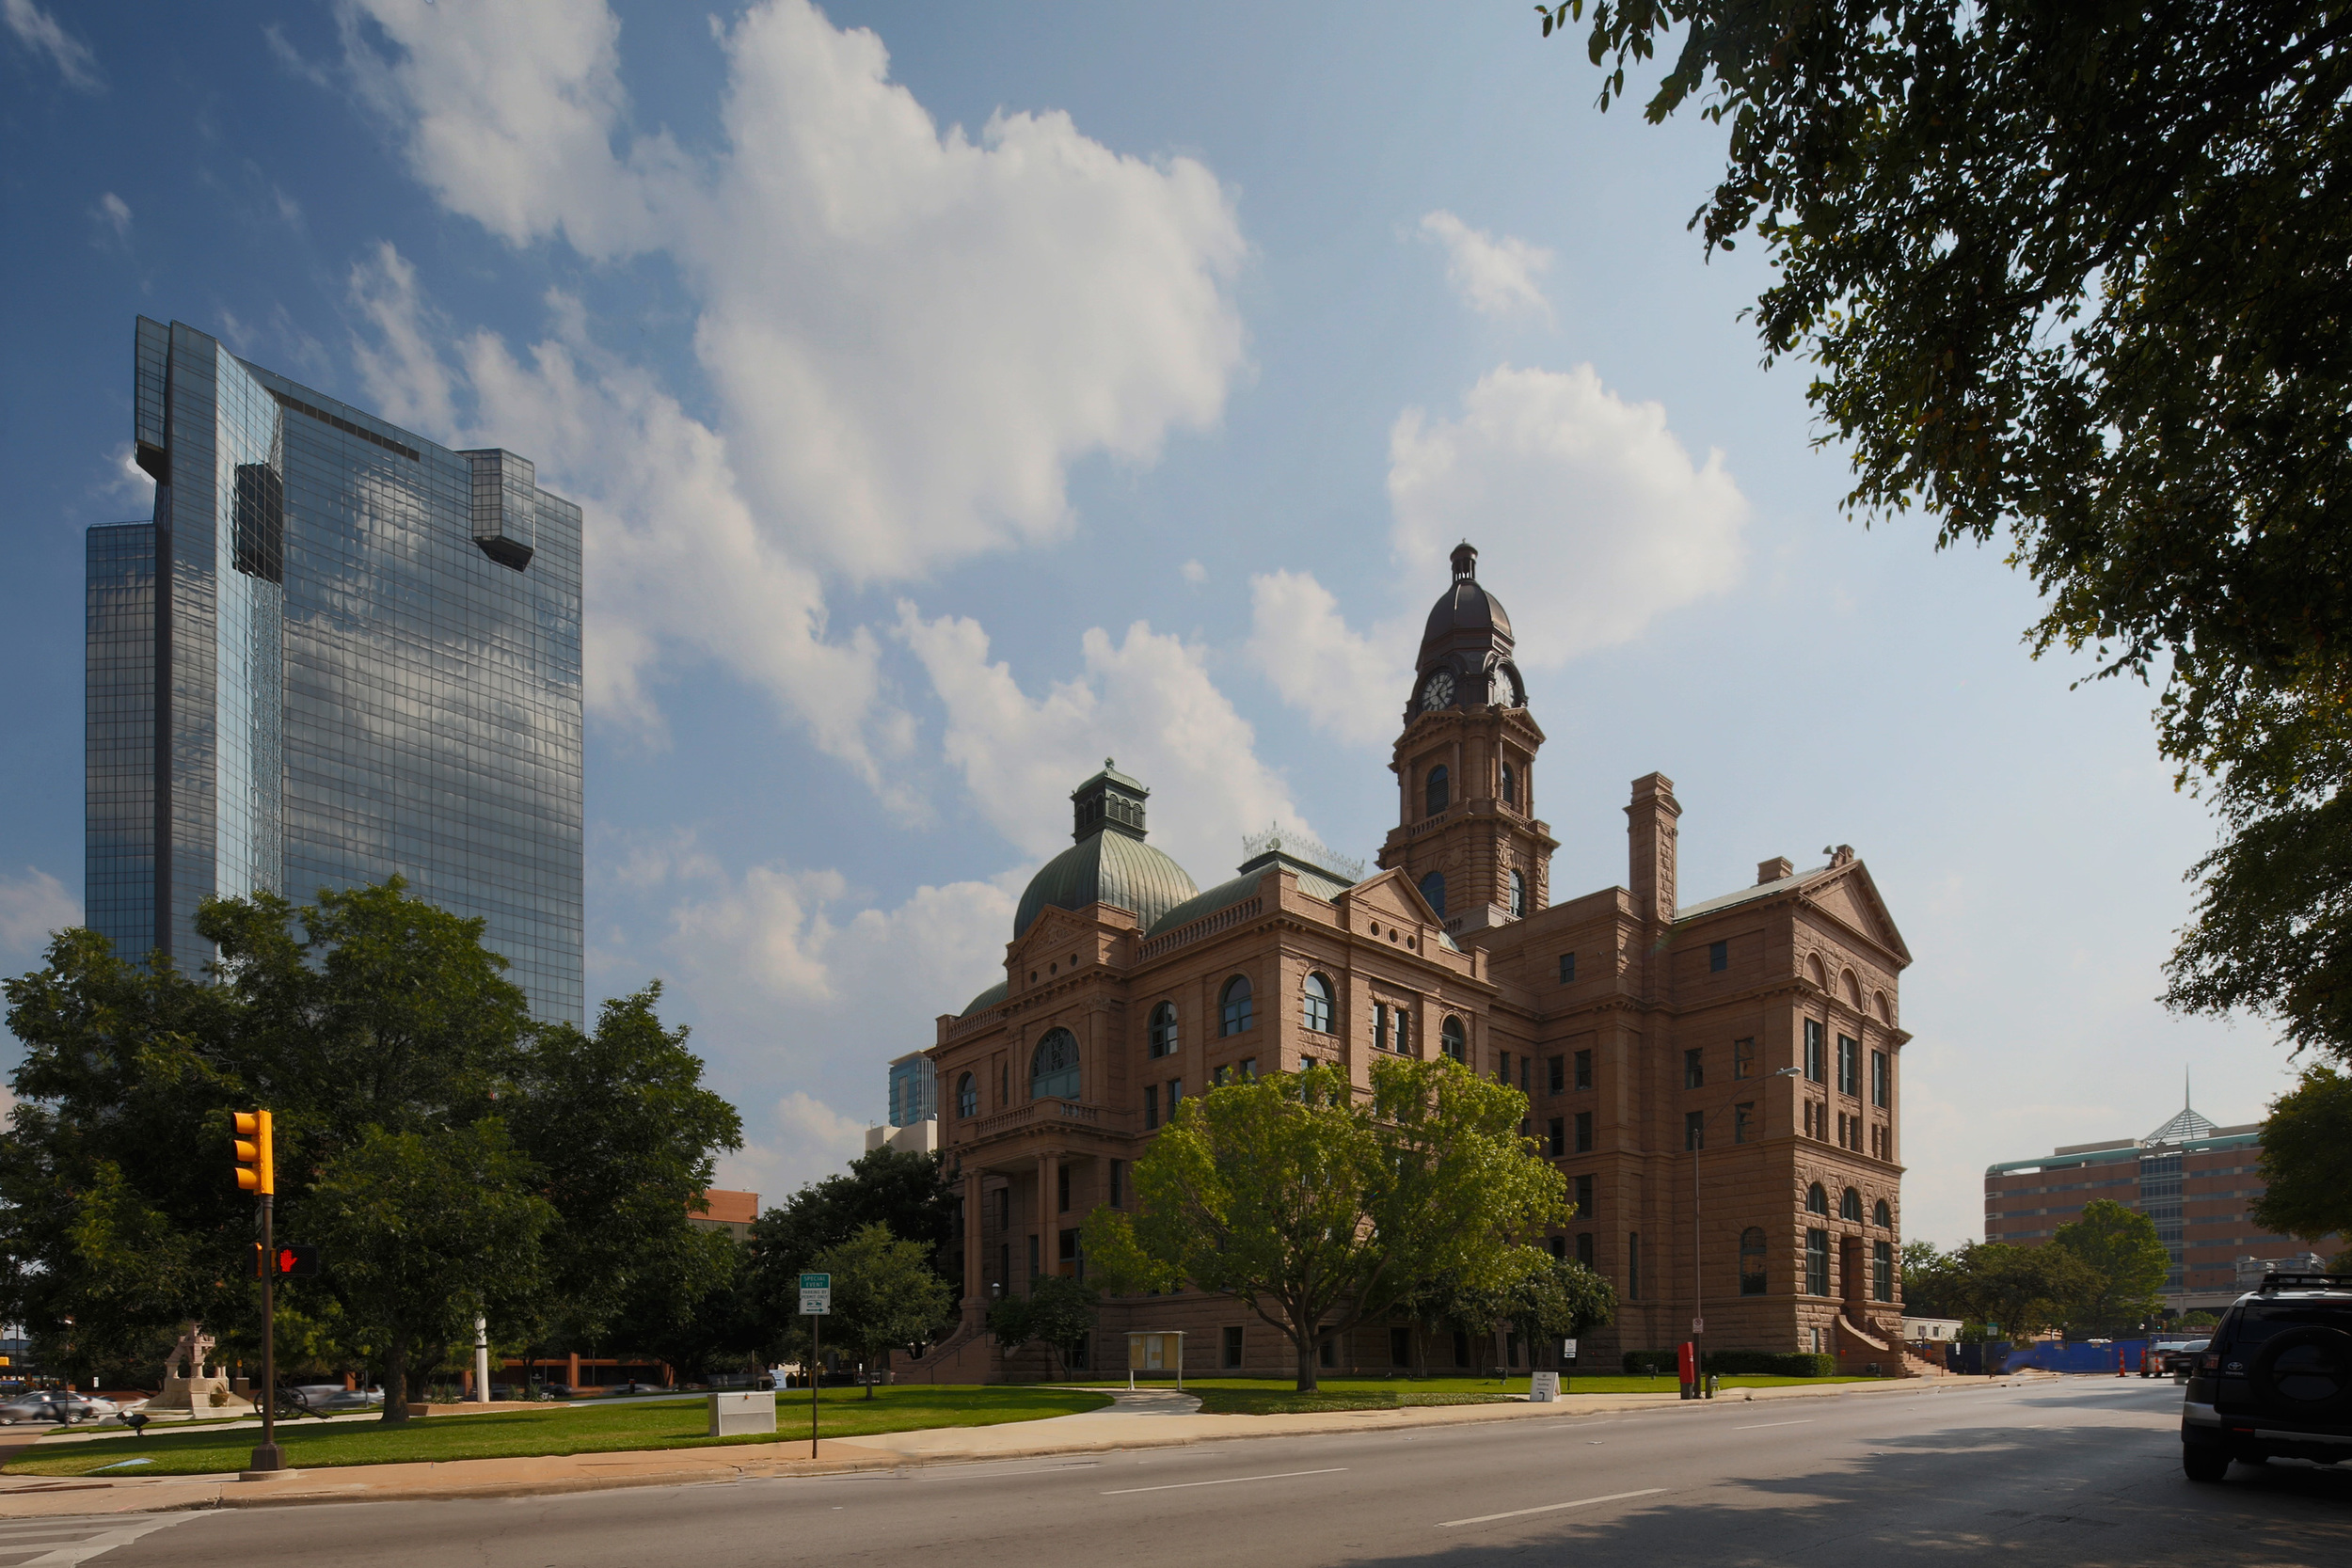 Tarrant County Courthouse and the D.R. Horton Tower